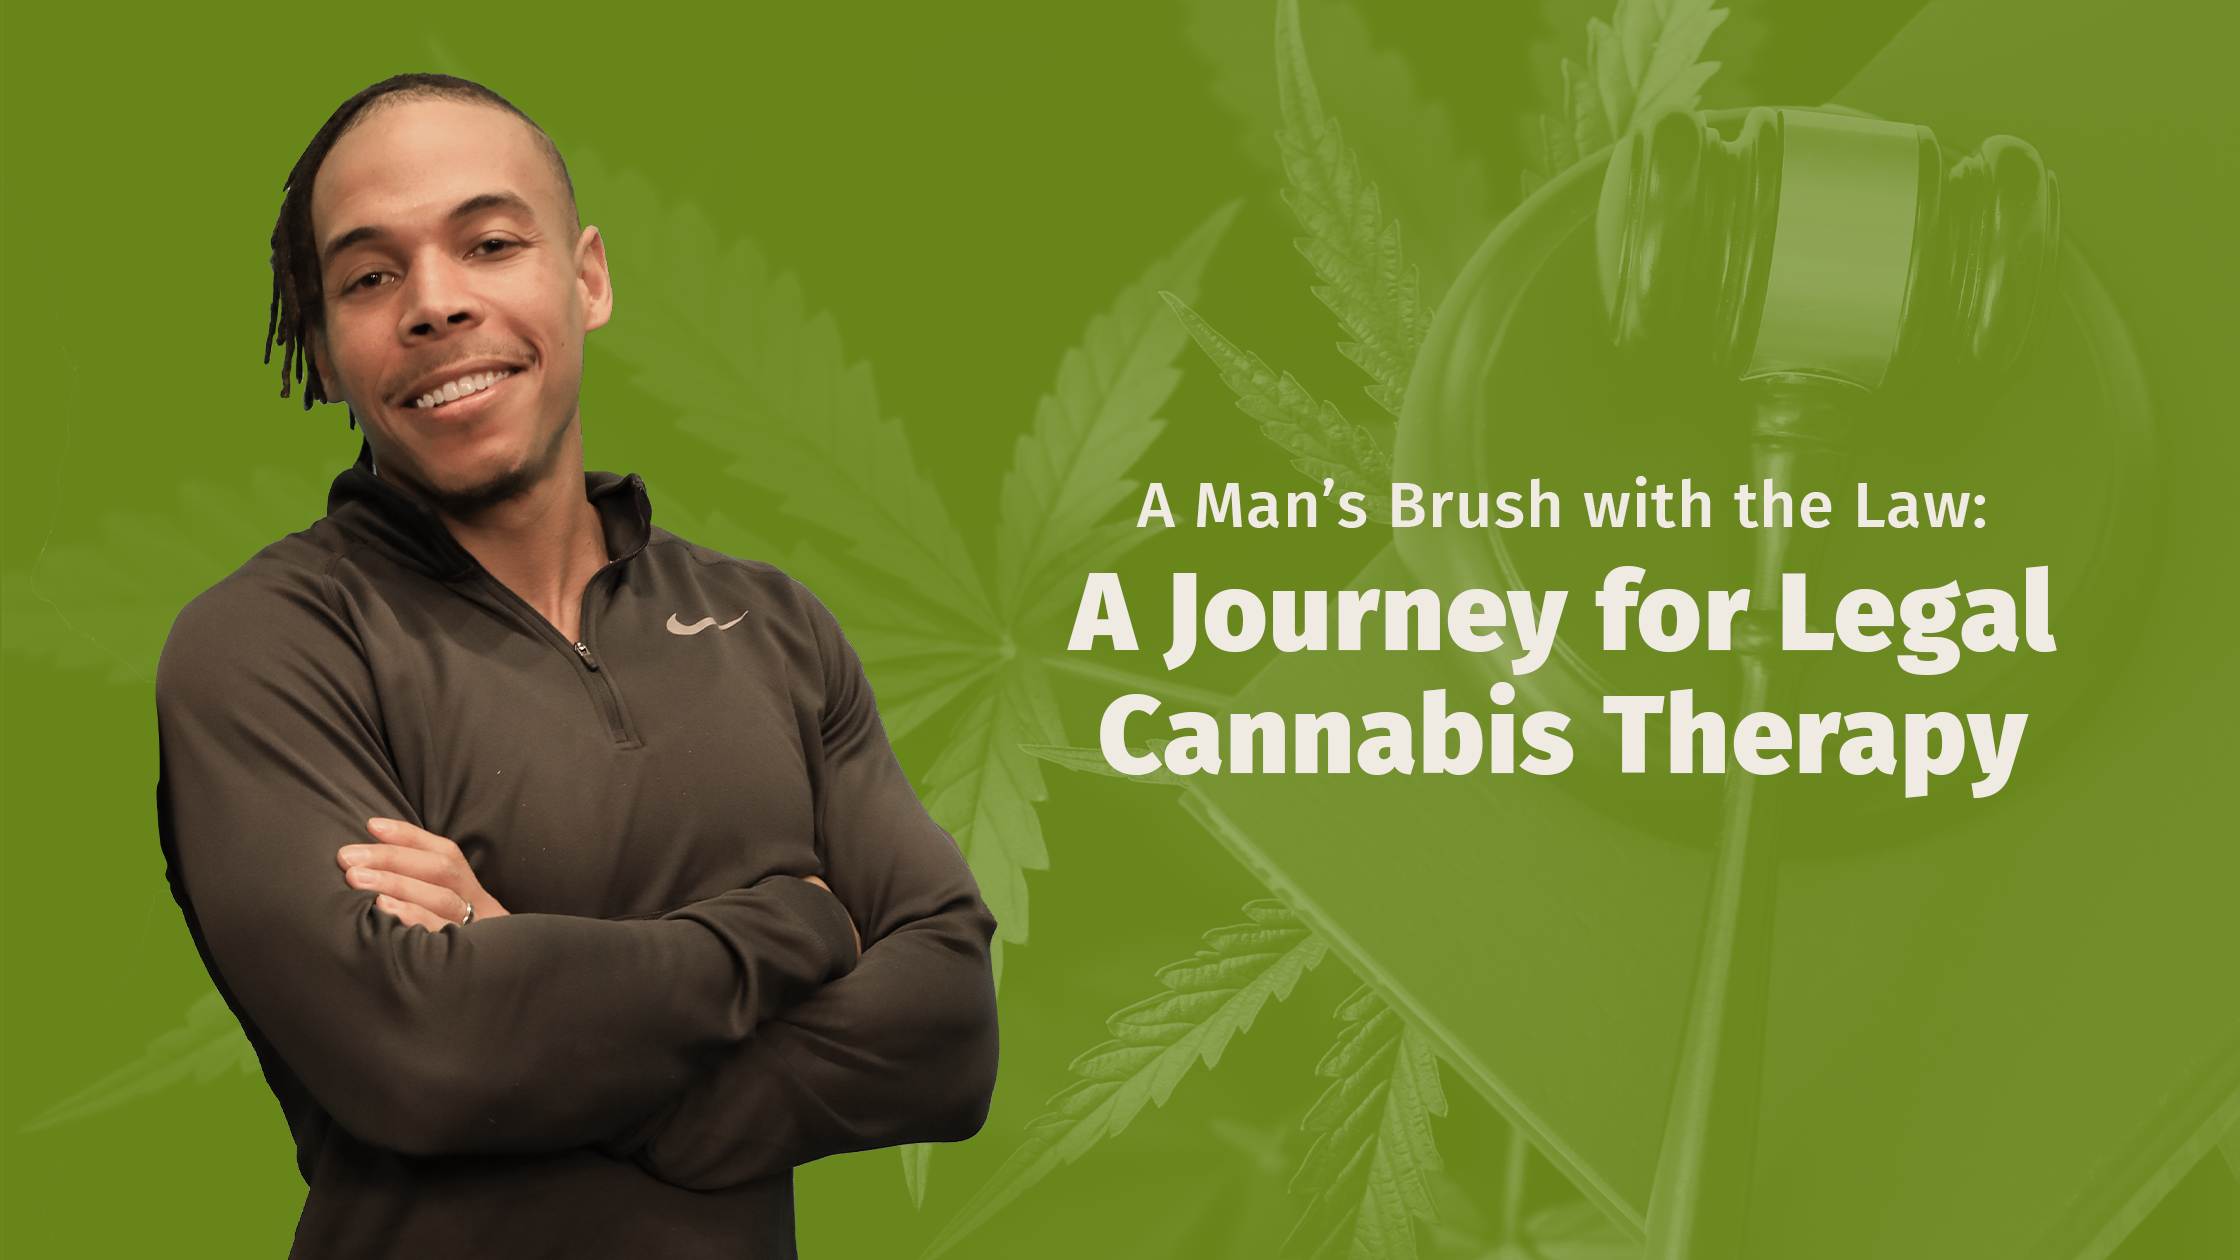 A Personal Journey for the Legal Use of Cannabis Therapy